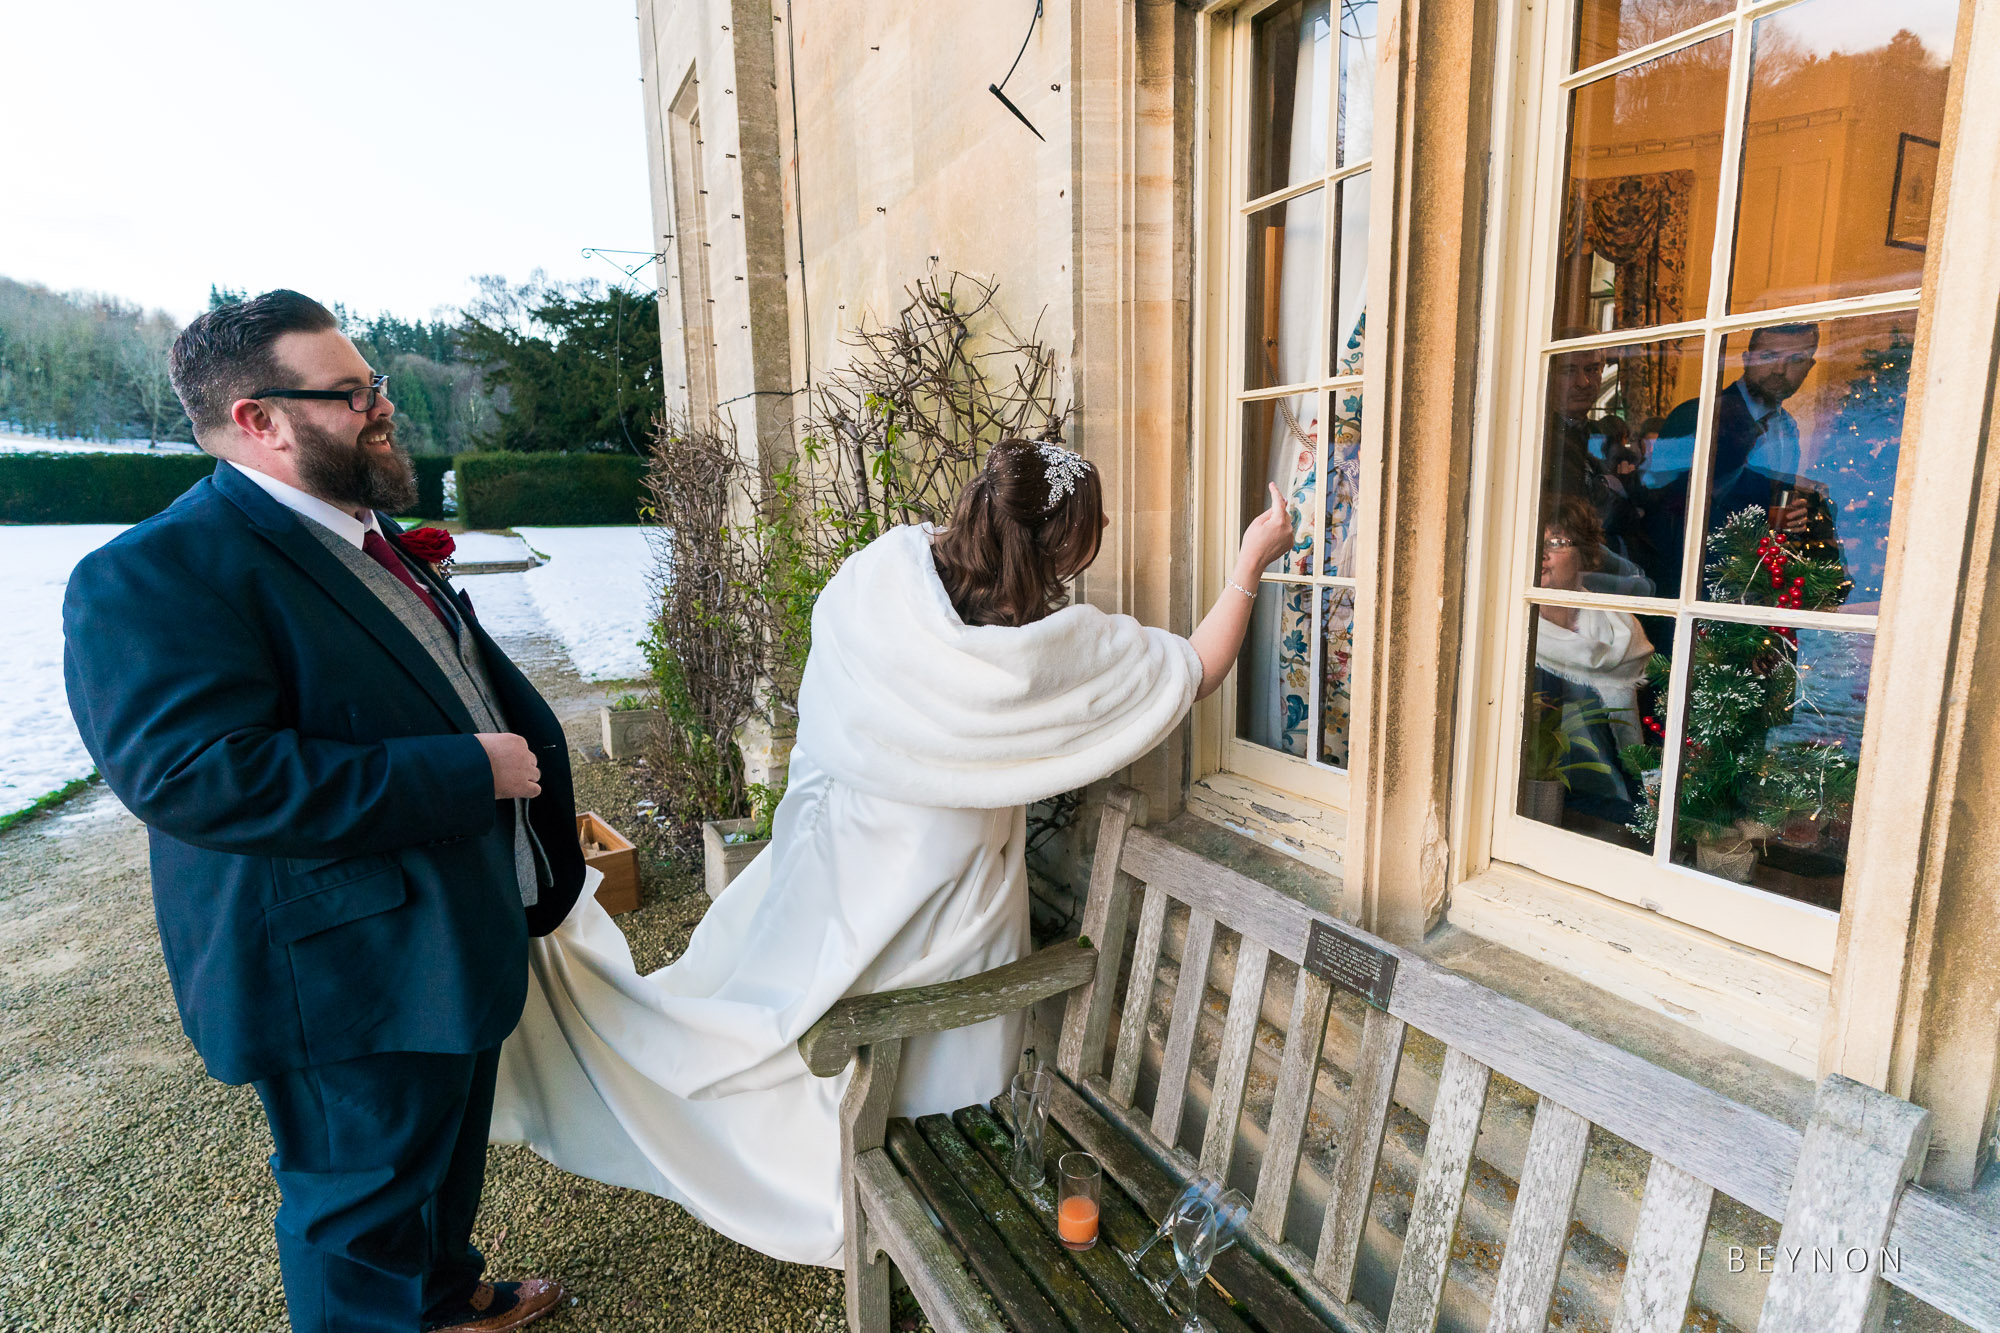 The Bride knocks to get back in